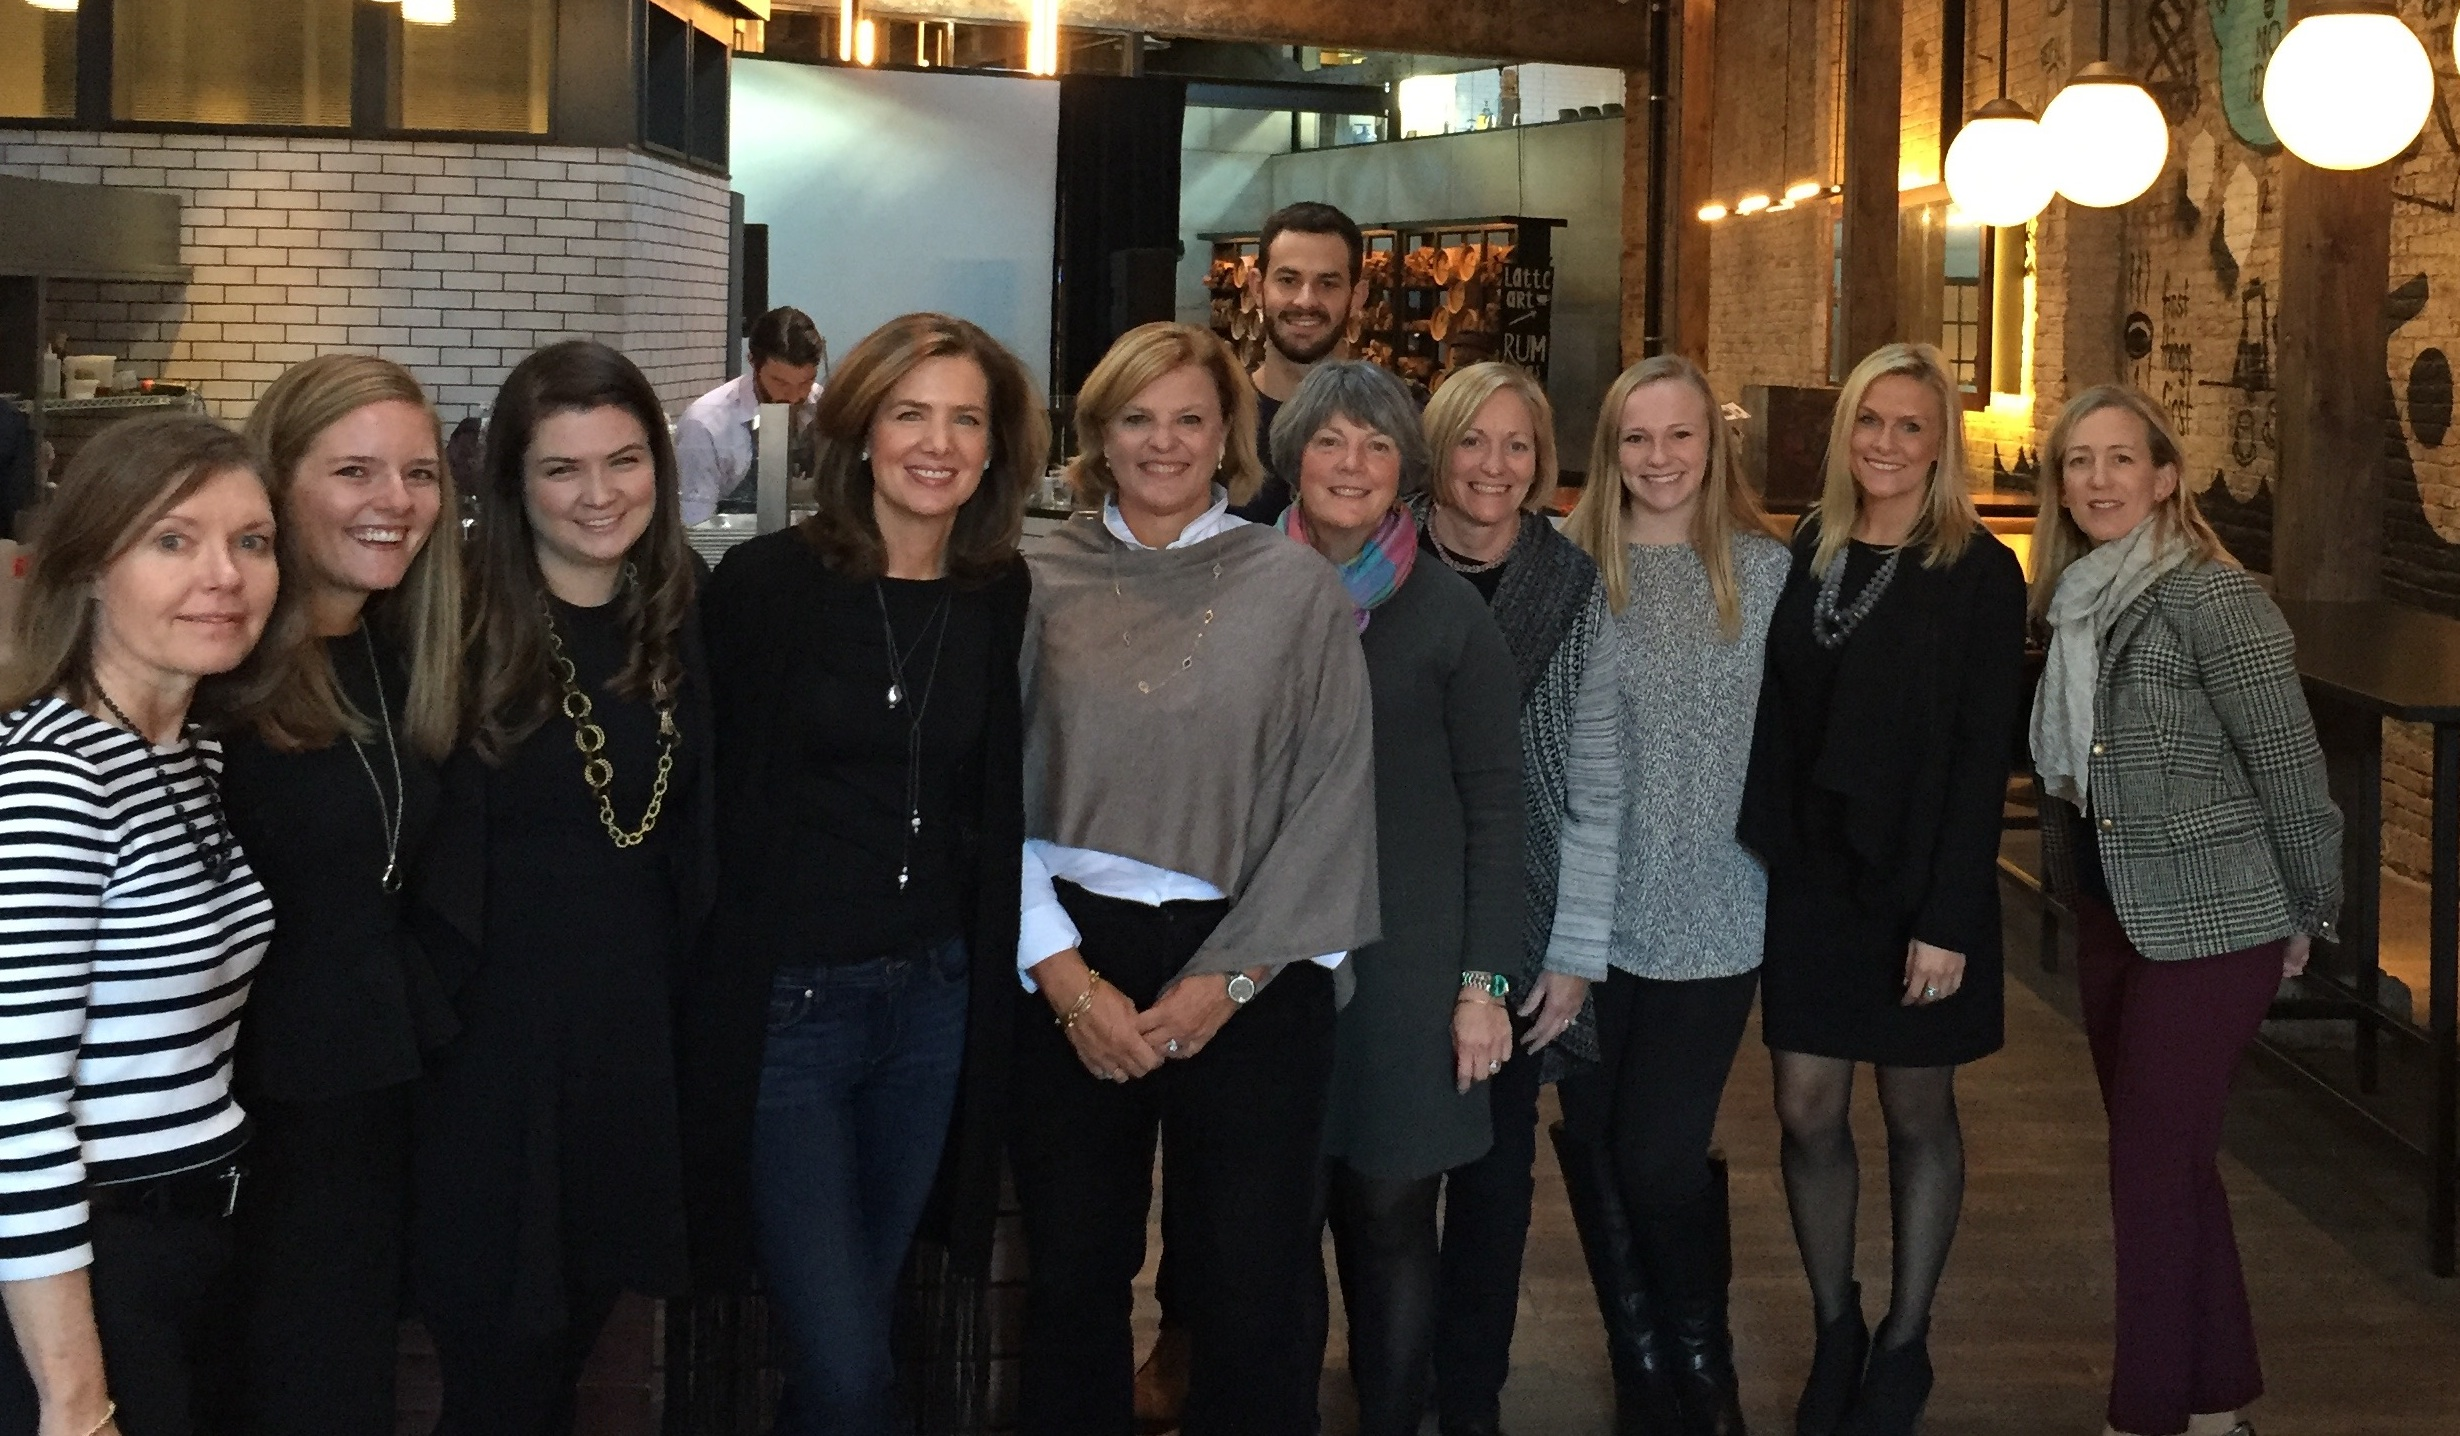 Thank you to our 10th Anniversary Bash volunteers: Lois Redmond, Paige Armstrong, Kara O'Halloran, Caroline O'Halloran, event chair Anne Cunningham, Jeff Kaiser, Betsy Aikens, Leslie Roy, Liesel Johantgen, Lexi Tocci, and Heidi Hole. Not pictured: Adrianna Akintobi, Shane O'Halloran and Julia Urwin.